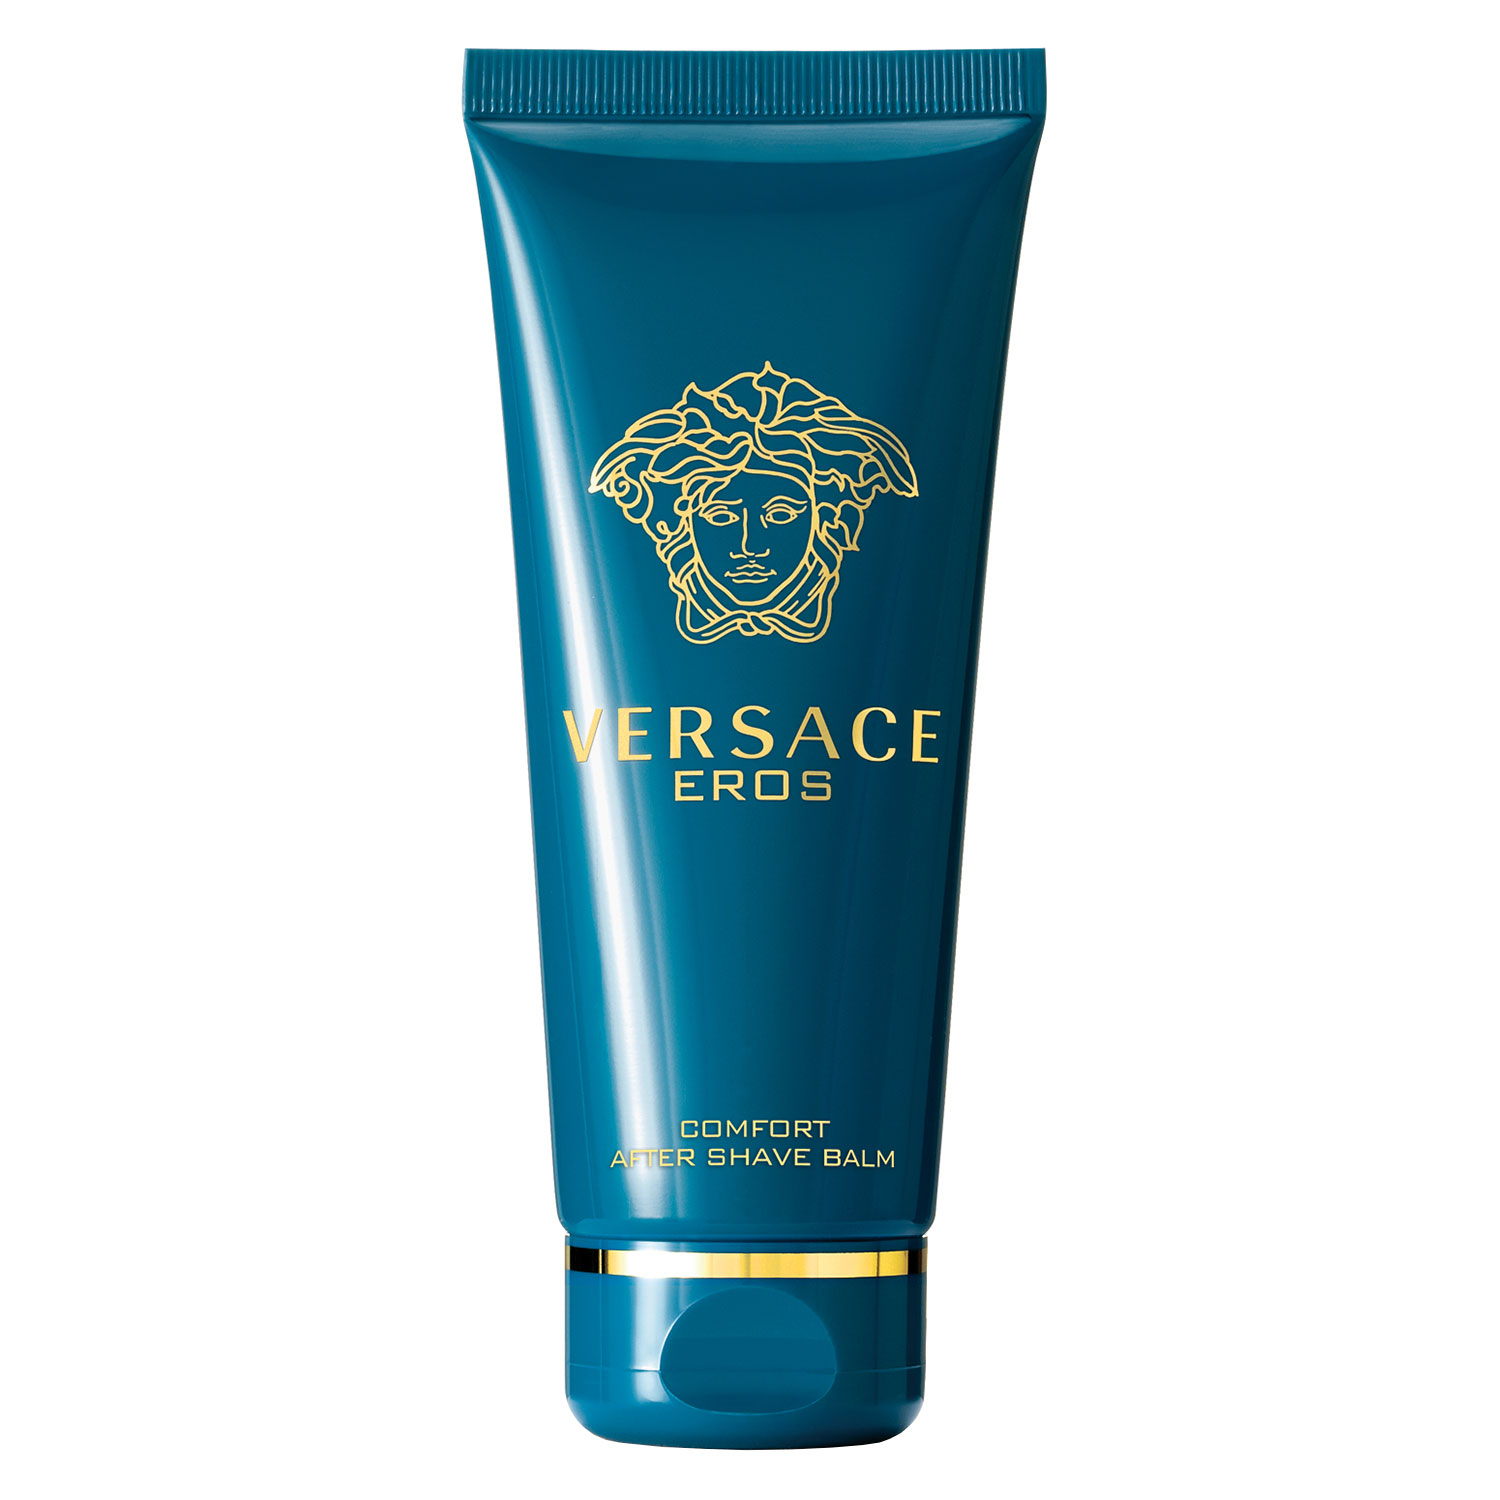 Versace Eros - After Shave Balm